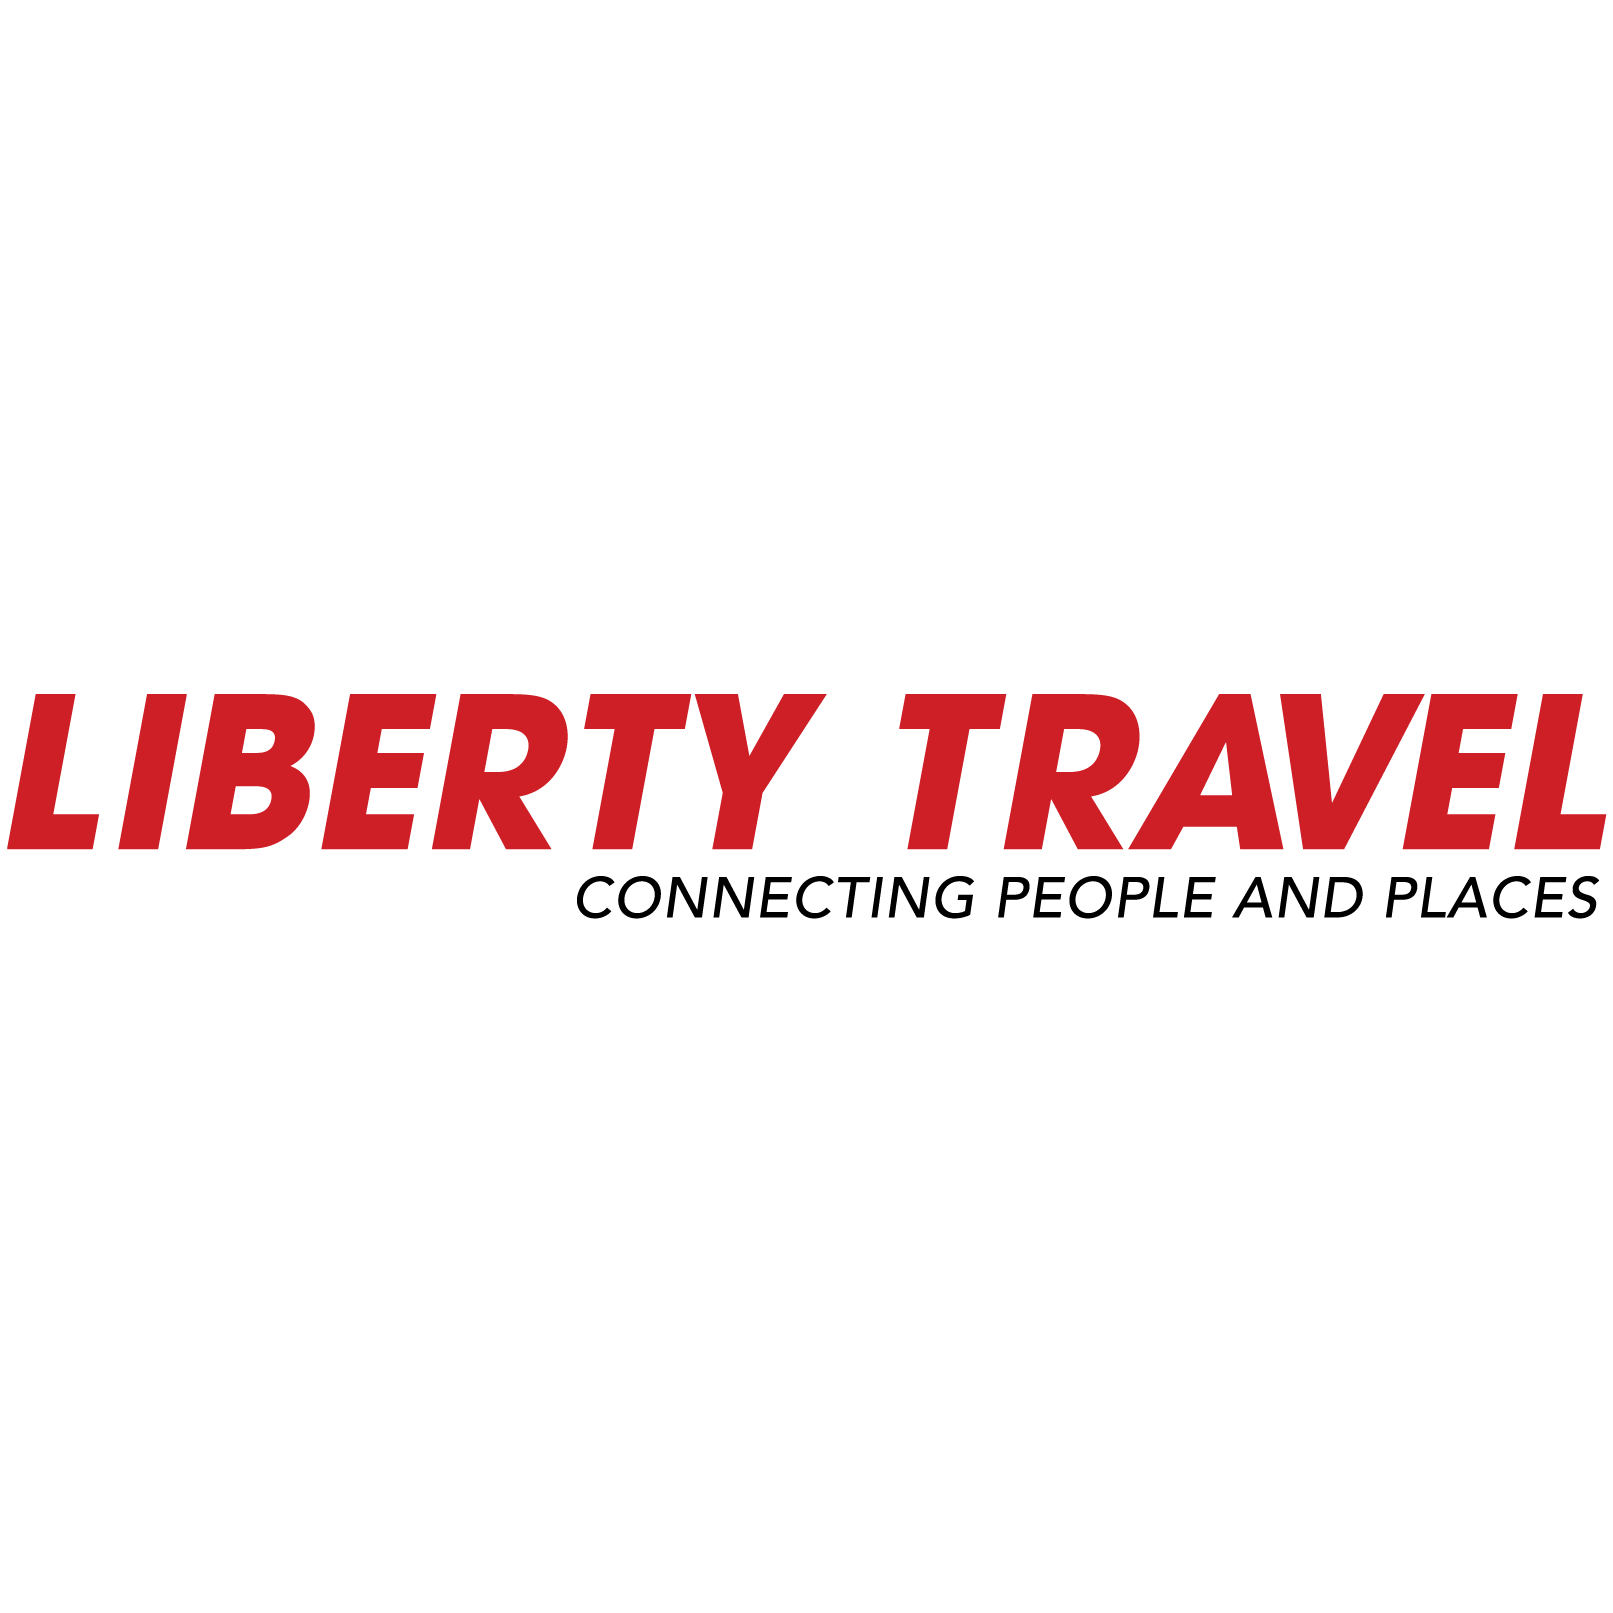 Liberty Travel image 3